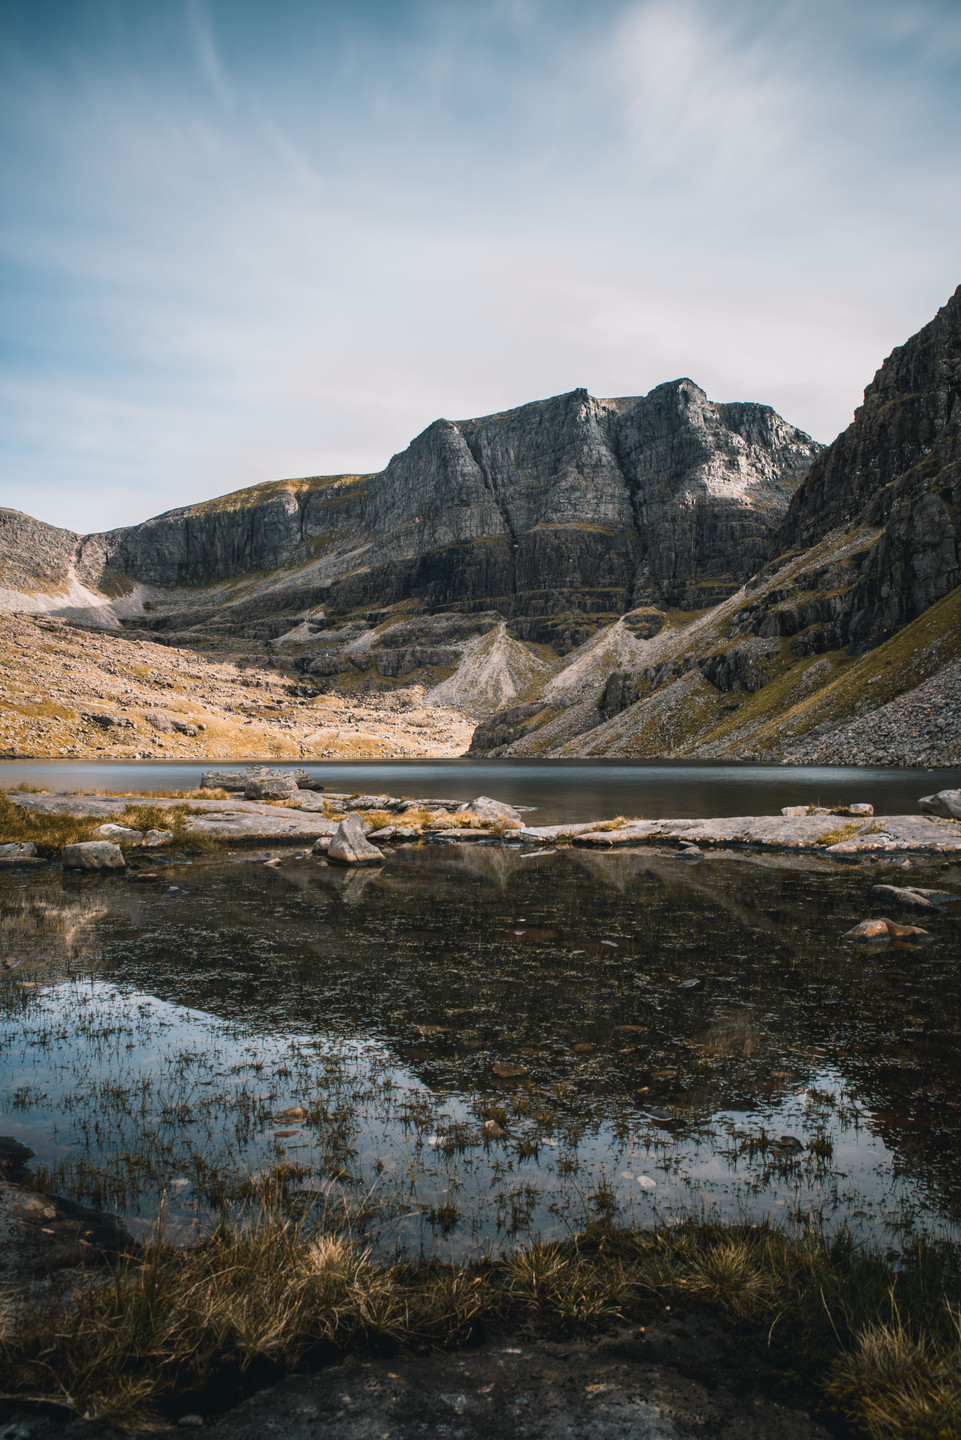 Loch Coire Mhic Fhearchair, Torridon. Photgraphic view of Triple Buttress by Jenny Rose Anderson